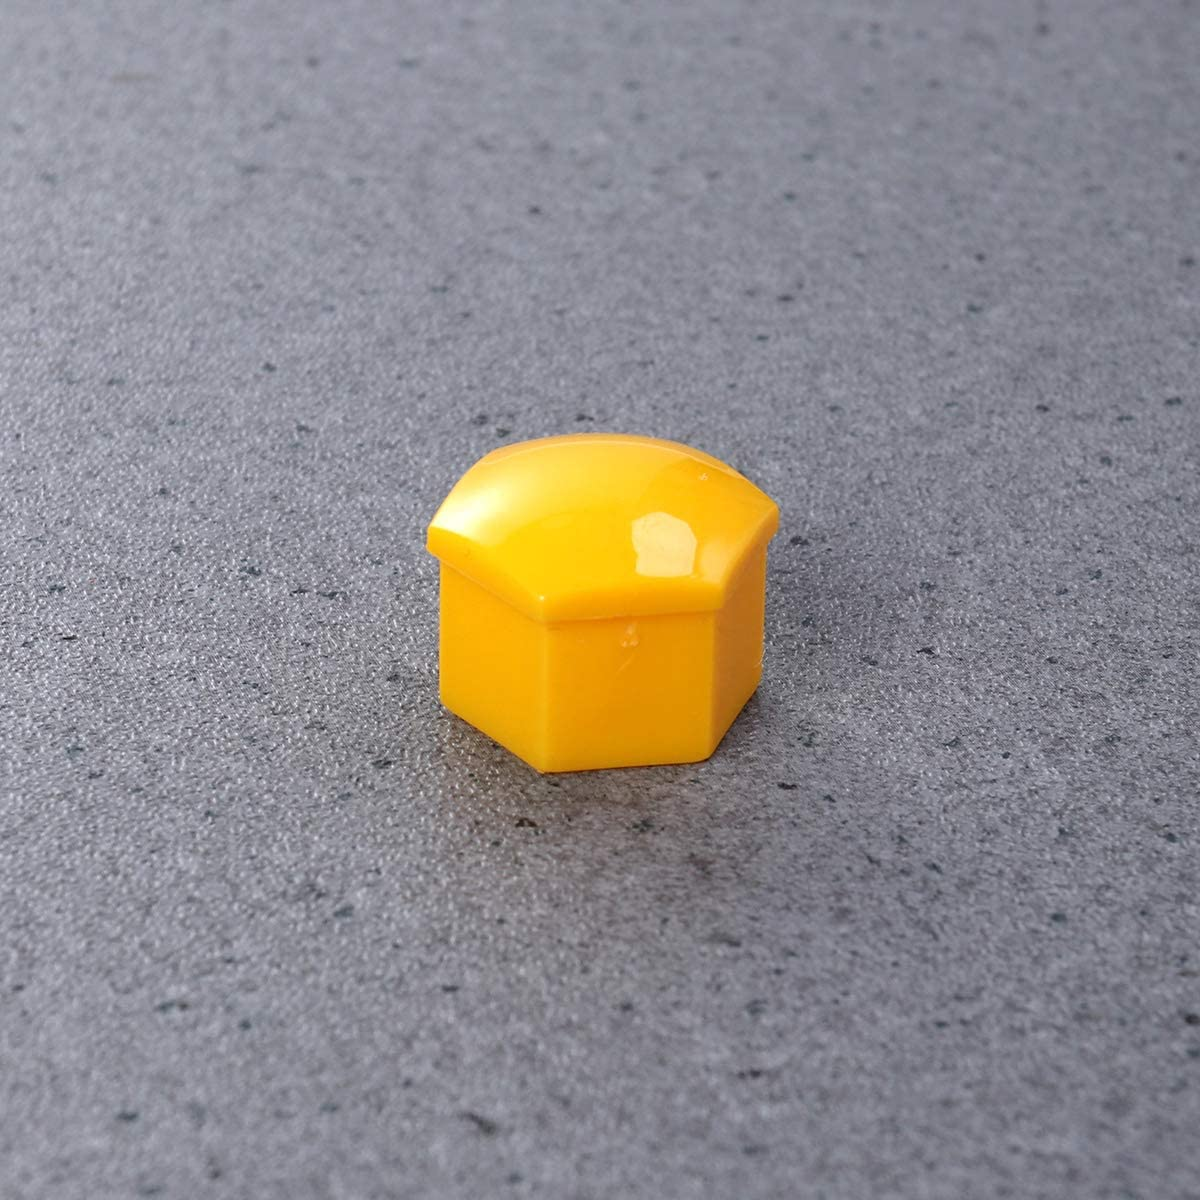 Yellow Vosarea 21 in 1 Hexagonal Wheel Lug Nut Covers Bolts Covers Screw Protect Caps 17mm with Clips